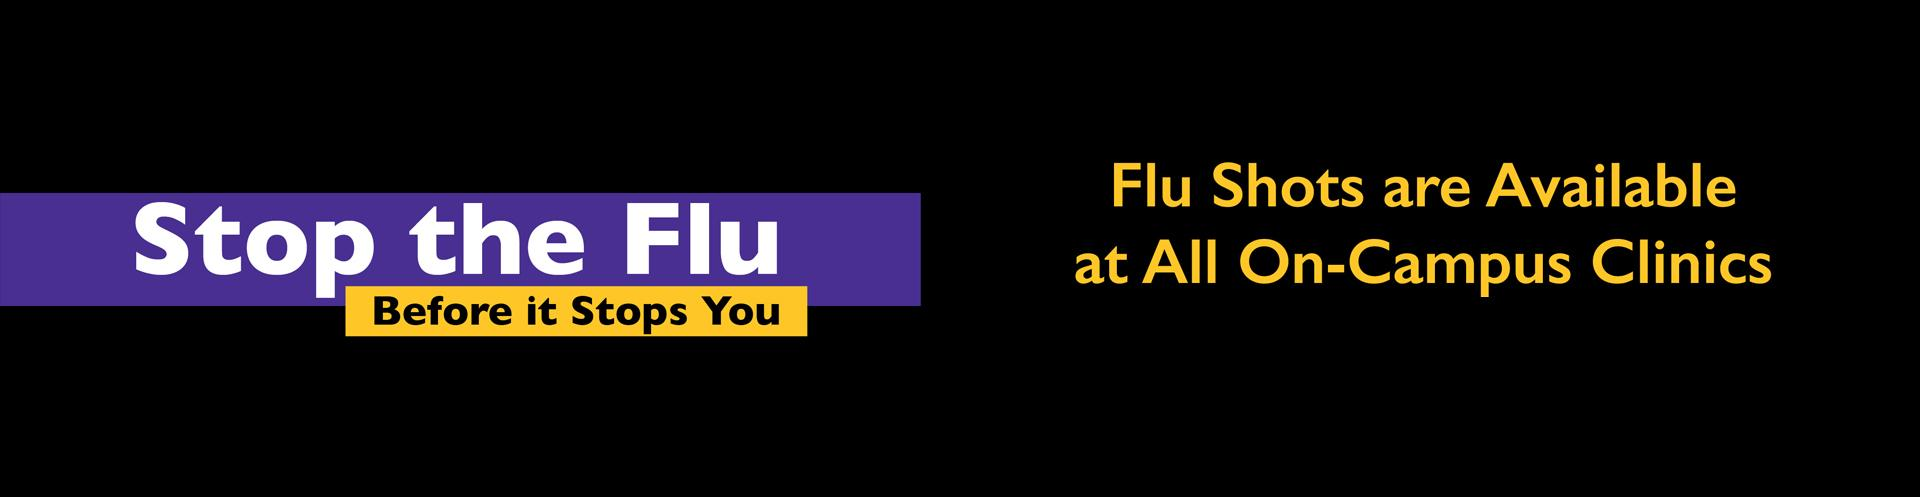 Call today to schedule your flu shot appointment! 470-578-6644